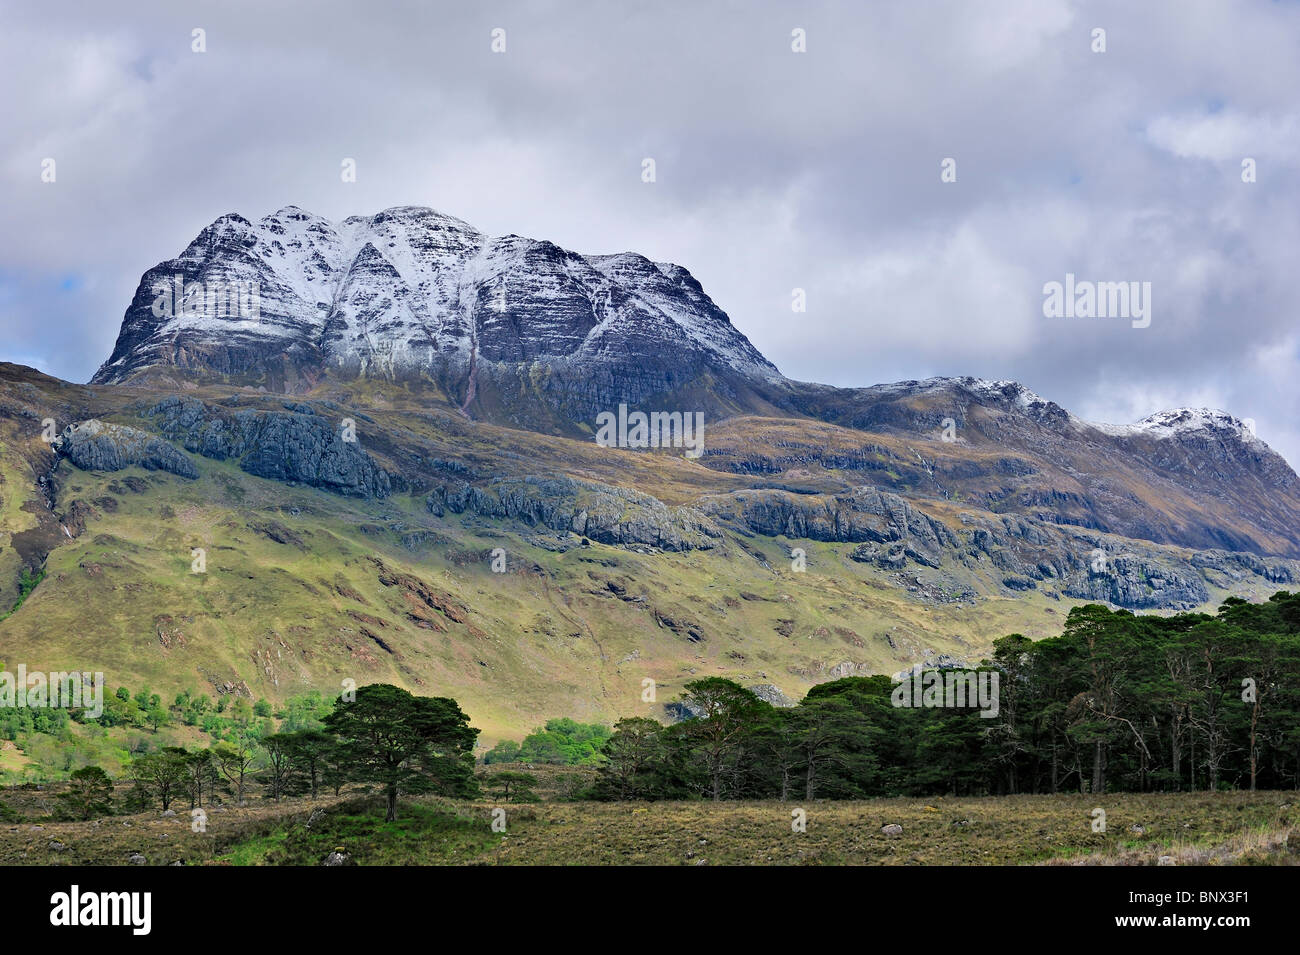 The mountain Slioch covered in snow in spring, Wester Ross, Highlands, Scotland, UK Stock Photo